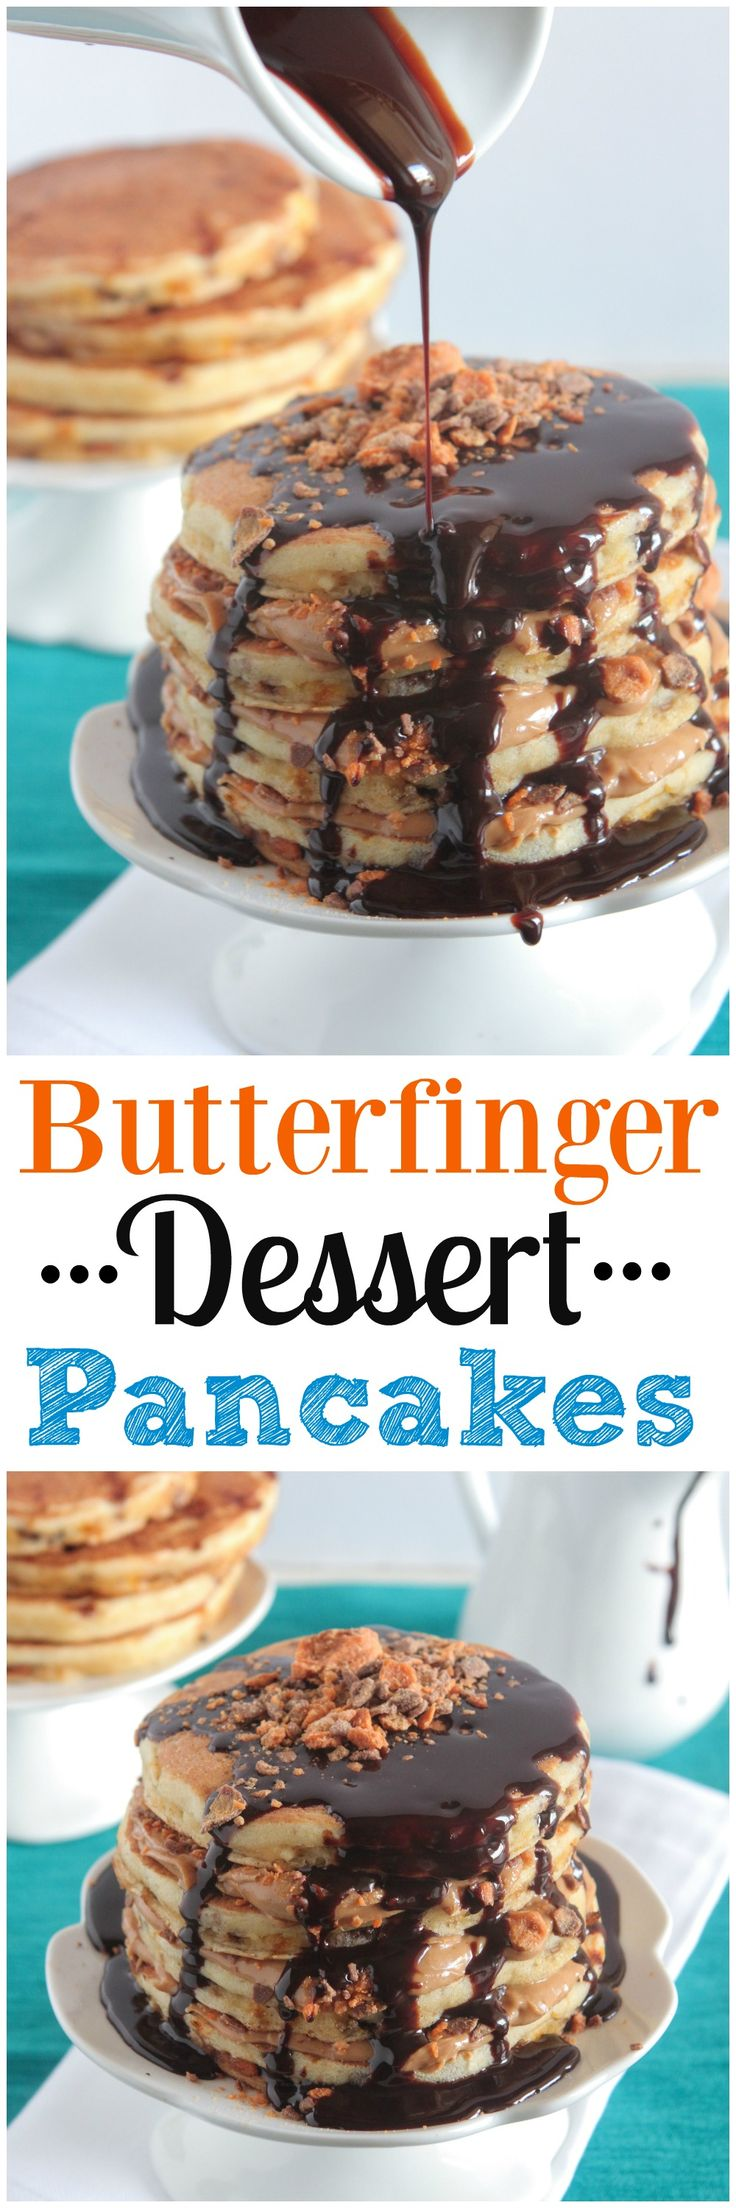 Butterfinger Dessert Pancakes! Gorgeous and delicious!